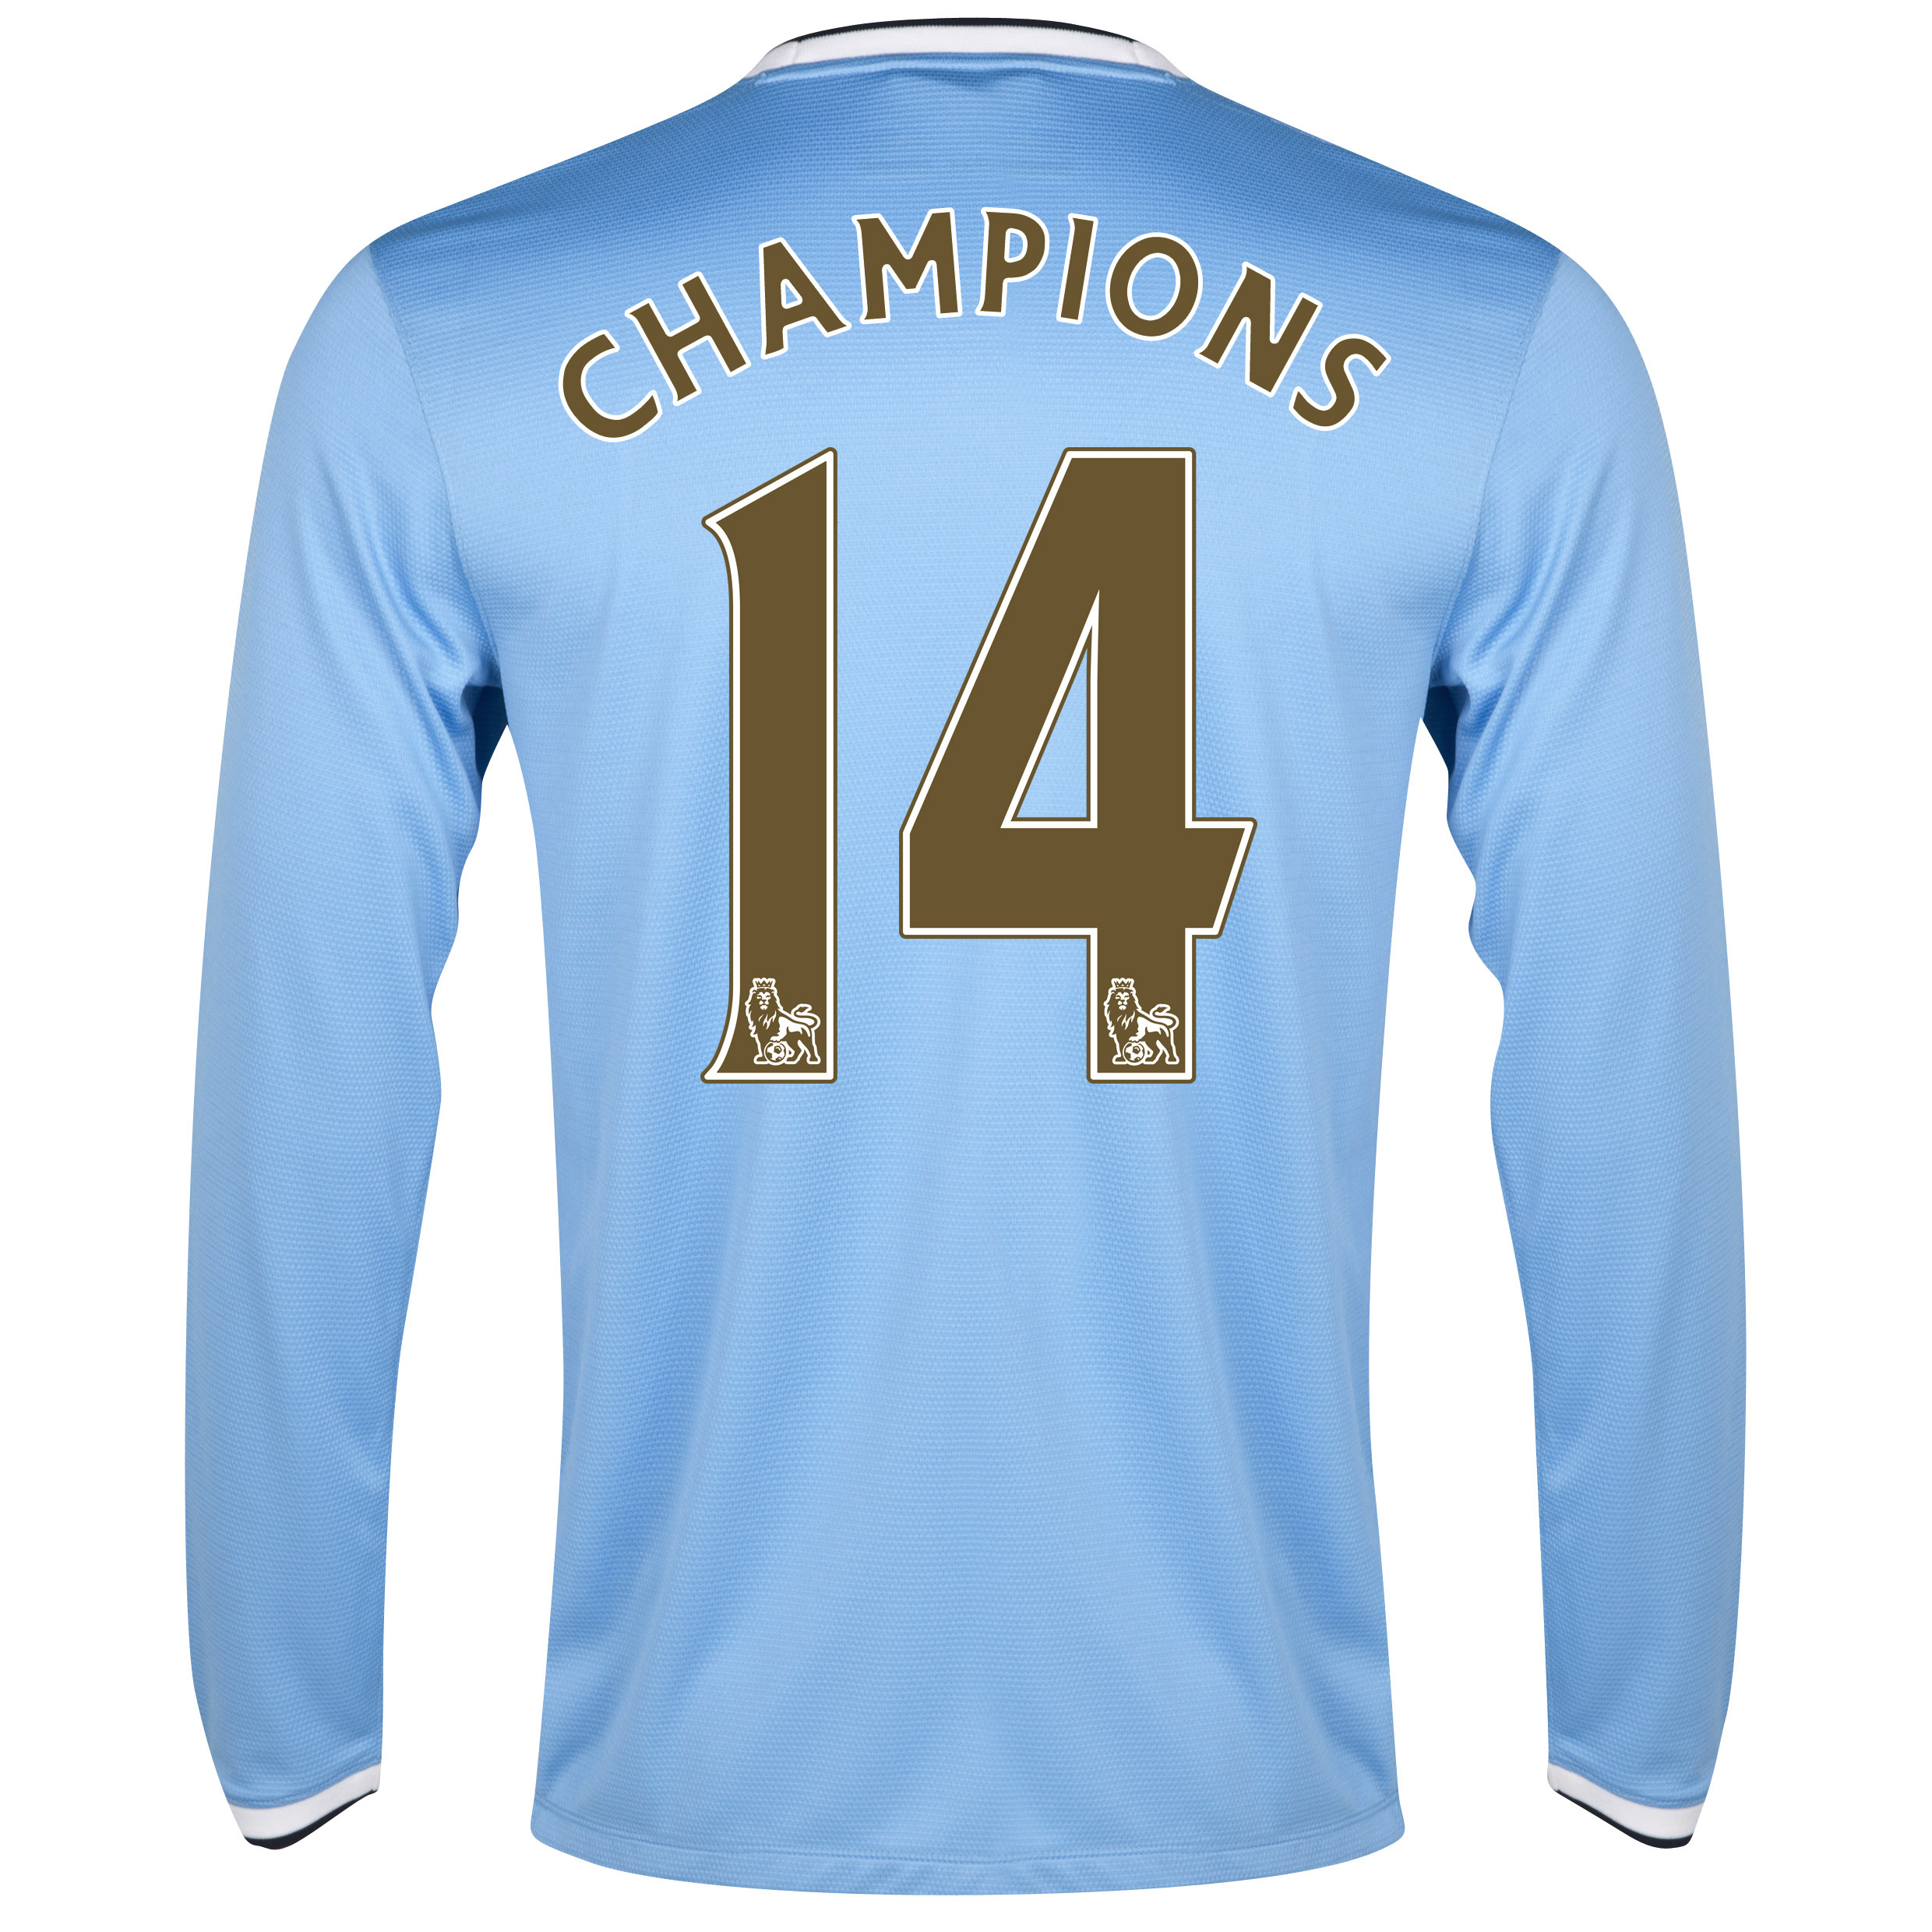 Manchester City Home Shirt 2013/14 - Long Sleeved with Champions 14 printing